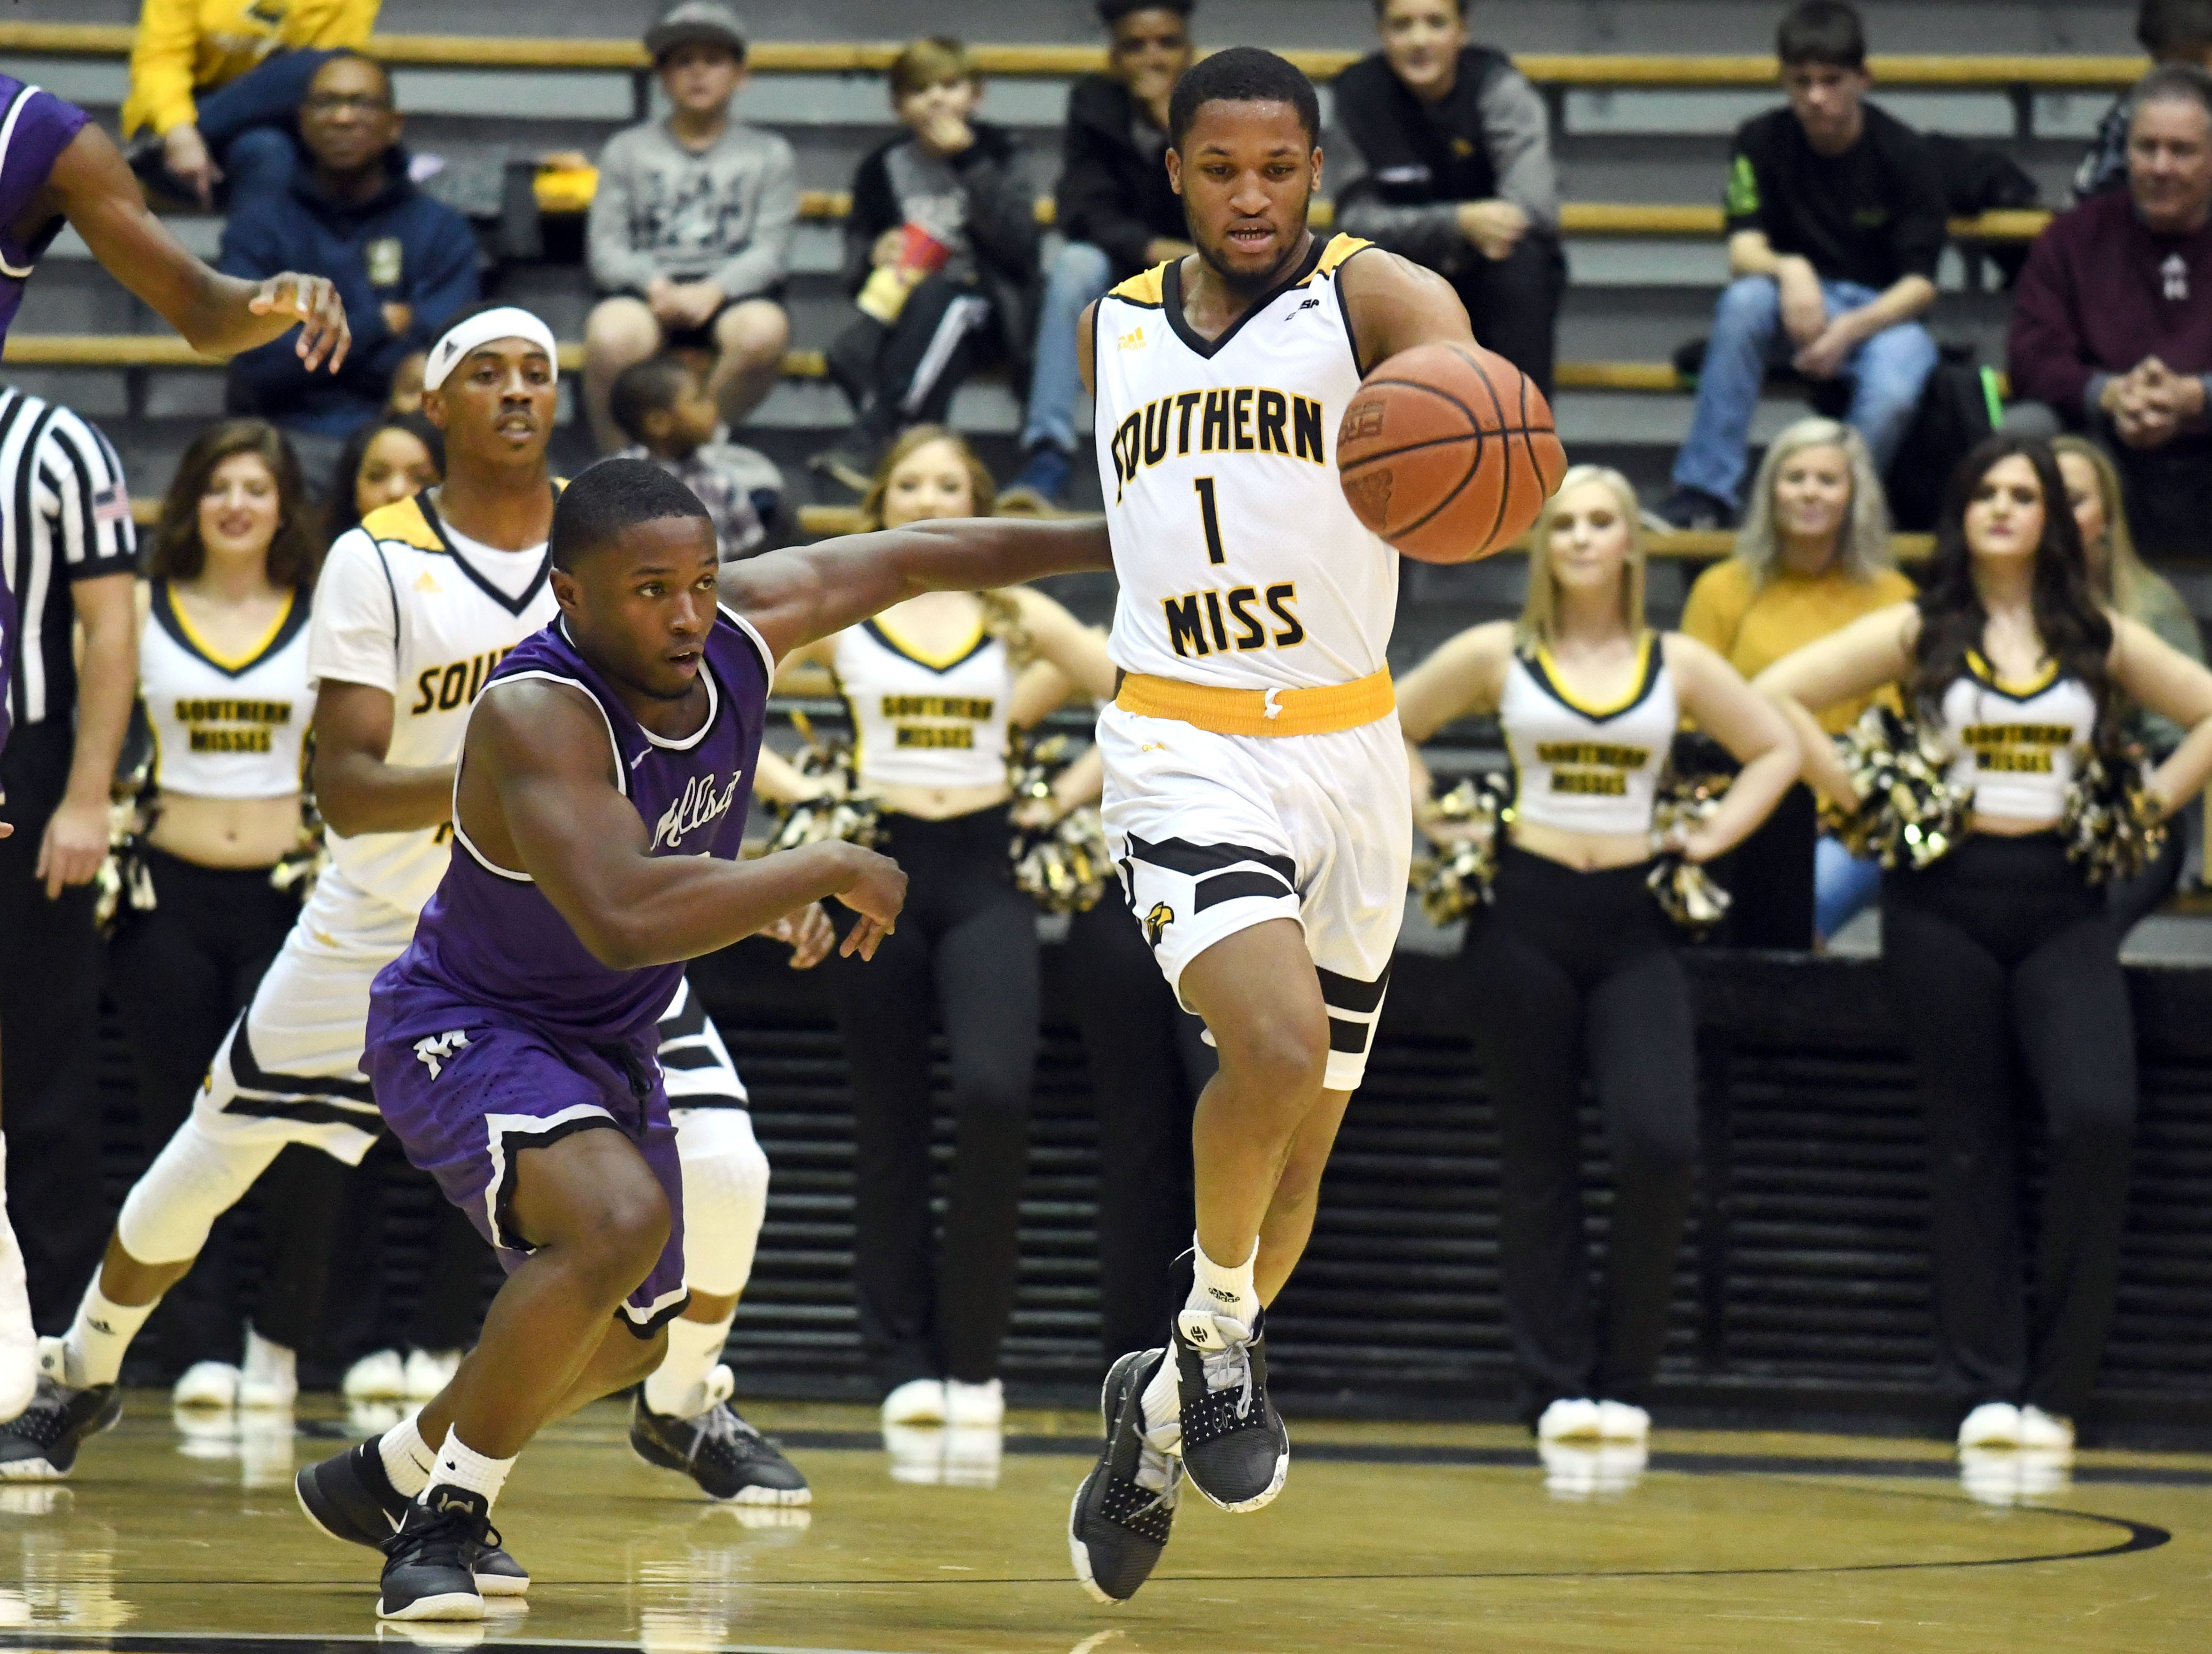 Southern Miss guard Cortez Edwards steals the ball in a game against Millsaps in Reed Green Coliseum on Tuesday, December 11, 2018.